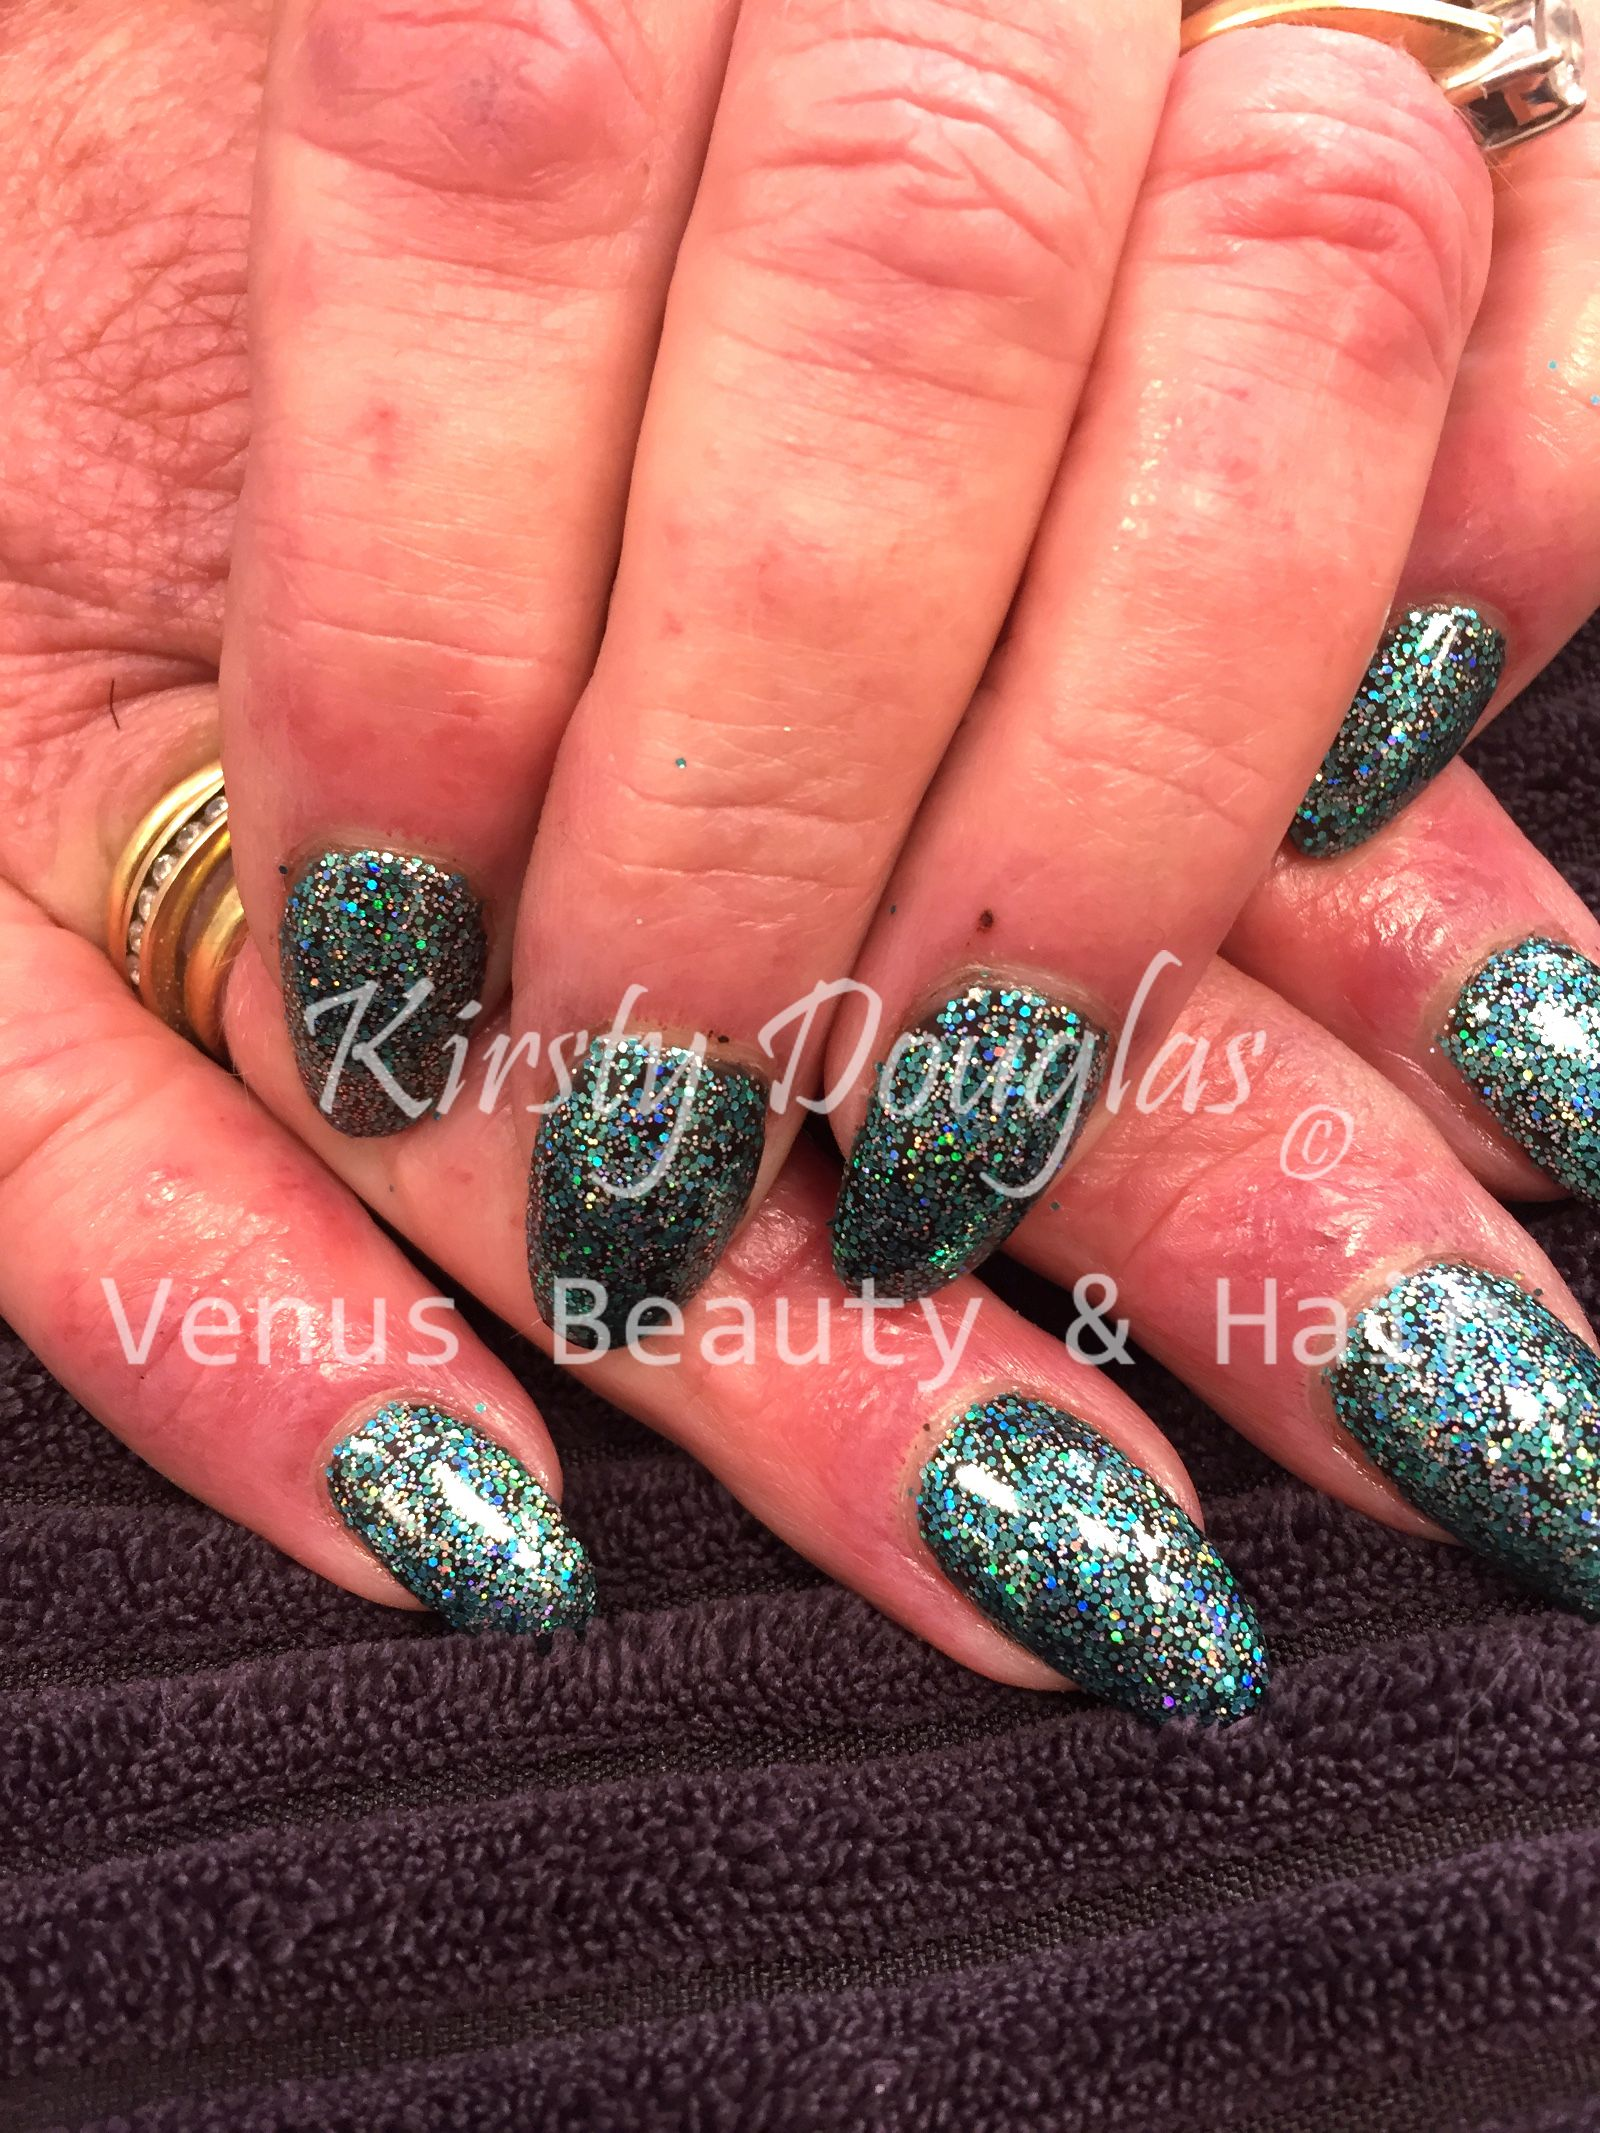 Pam went for one of the new Magpie Beauty glitters over Nail Harmony UK's base Black Shadow. So sparkly, we're going to have fun with these glitters!